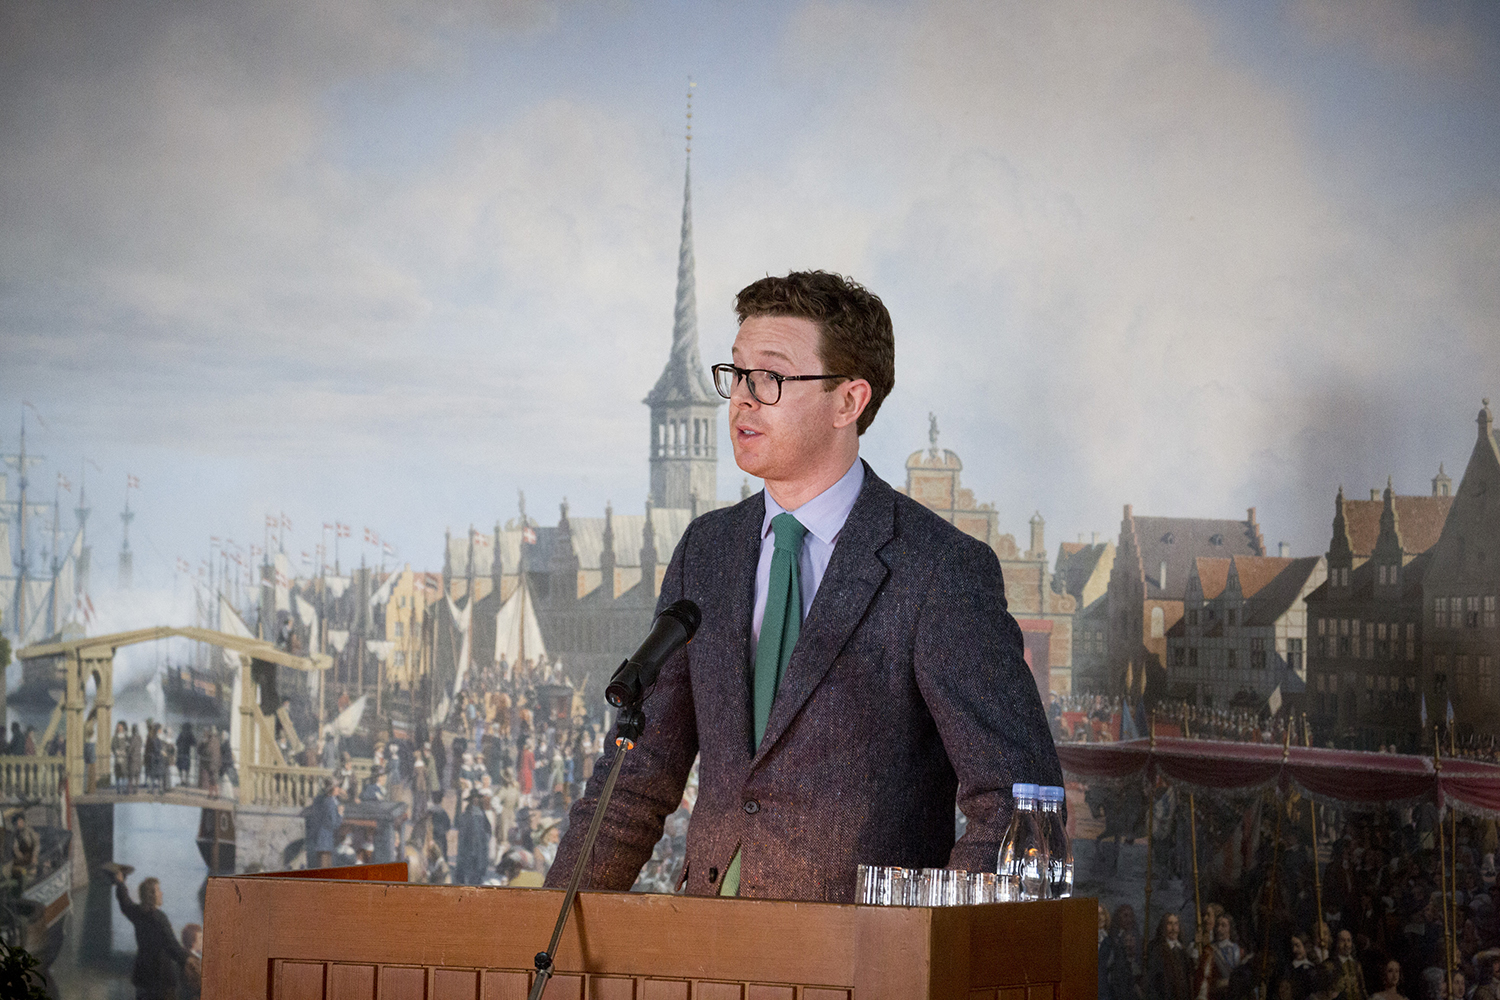 Nicholas Cullinan, Director of the National Portrait Gallery, London, gives a speech